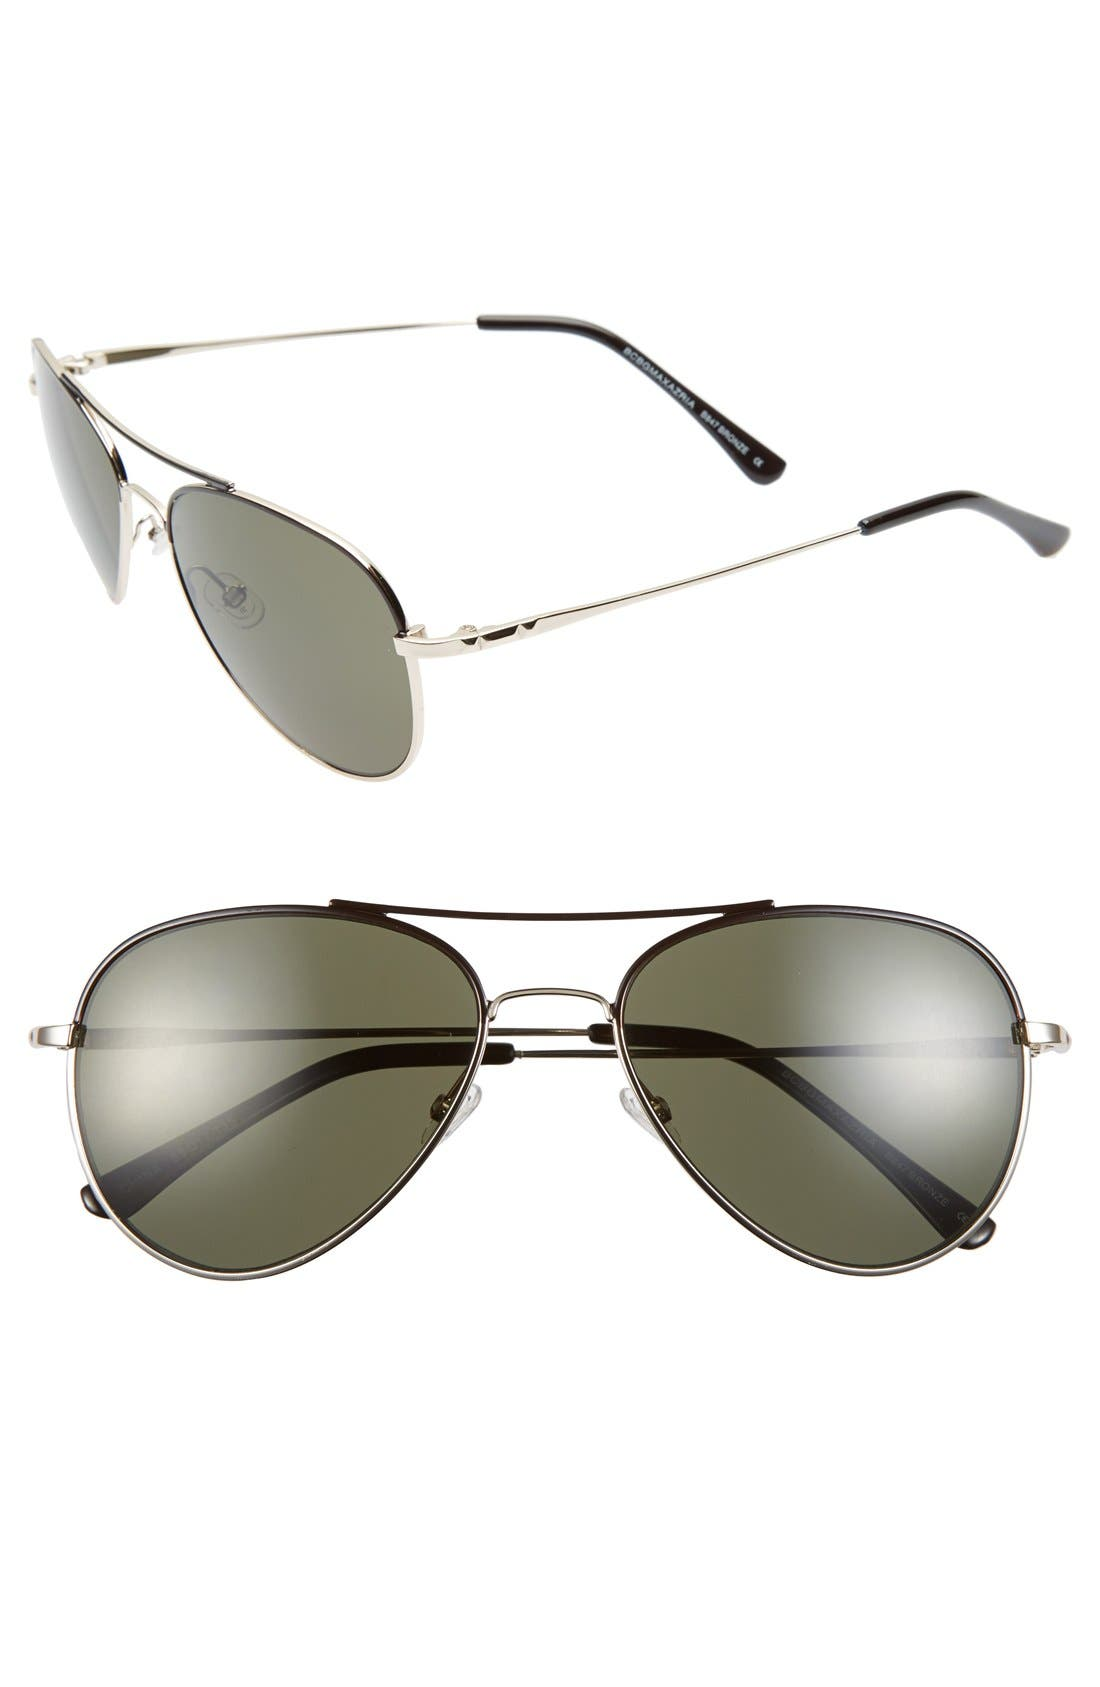 Main Image - BCBGMAXAZRIA 55mm Aviator Sunglasses